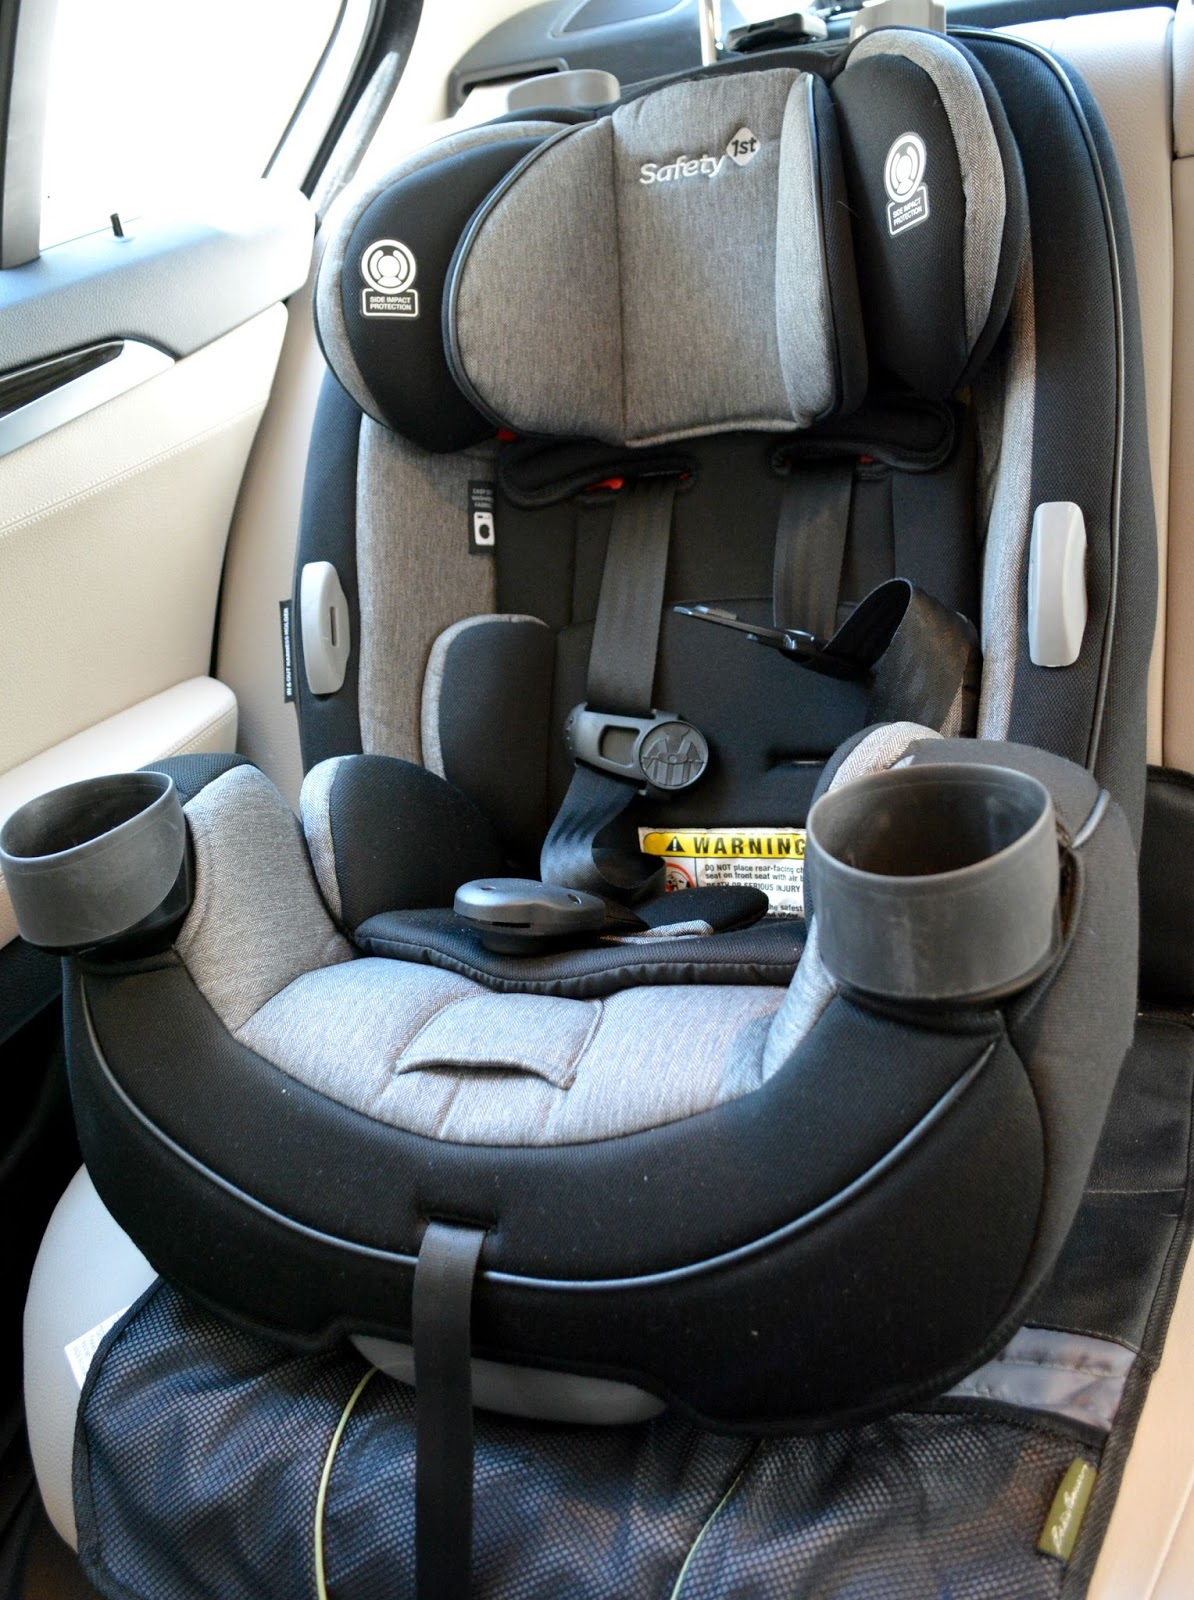 Safe Travel With Safety First Grow And Go 3 In 1 Convertible Car Seat